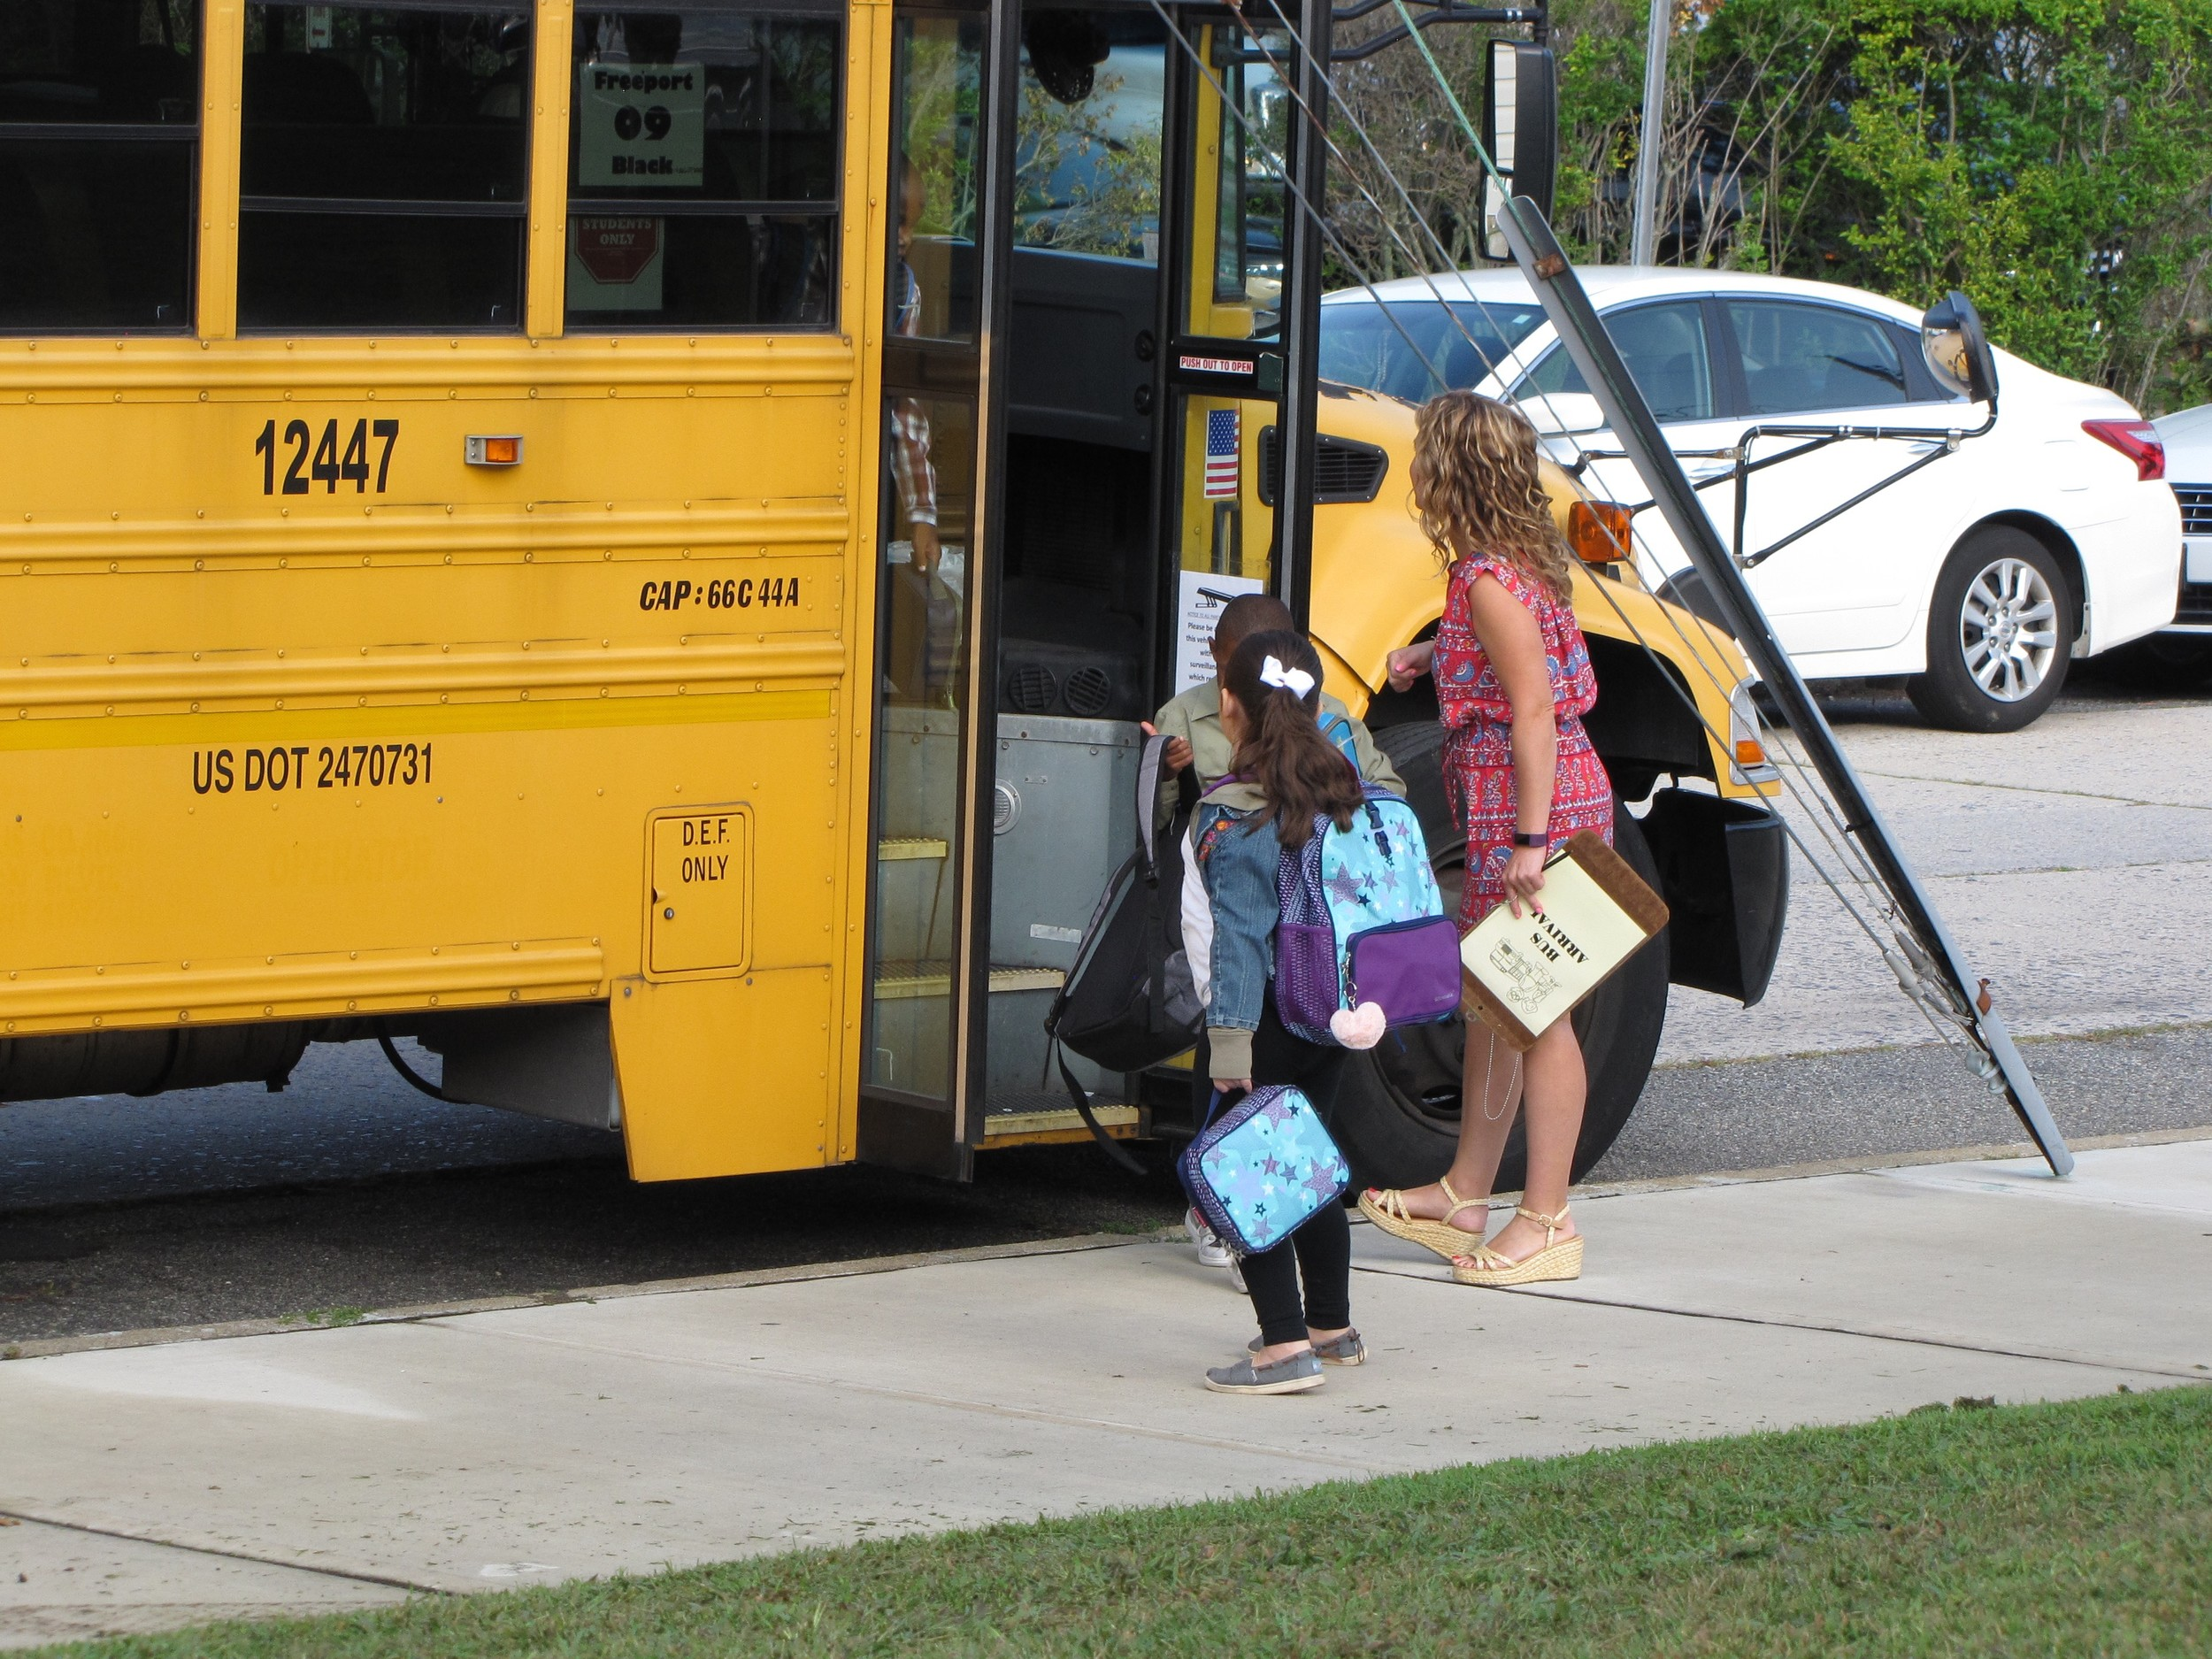 While some students walked to the Bayview Avenue School with their parents, others took the bus.